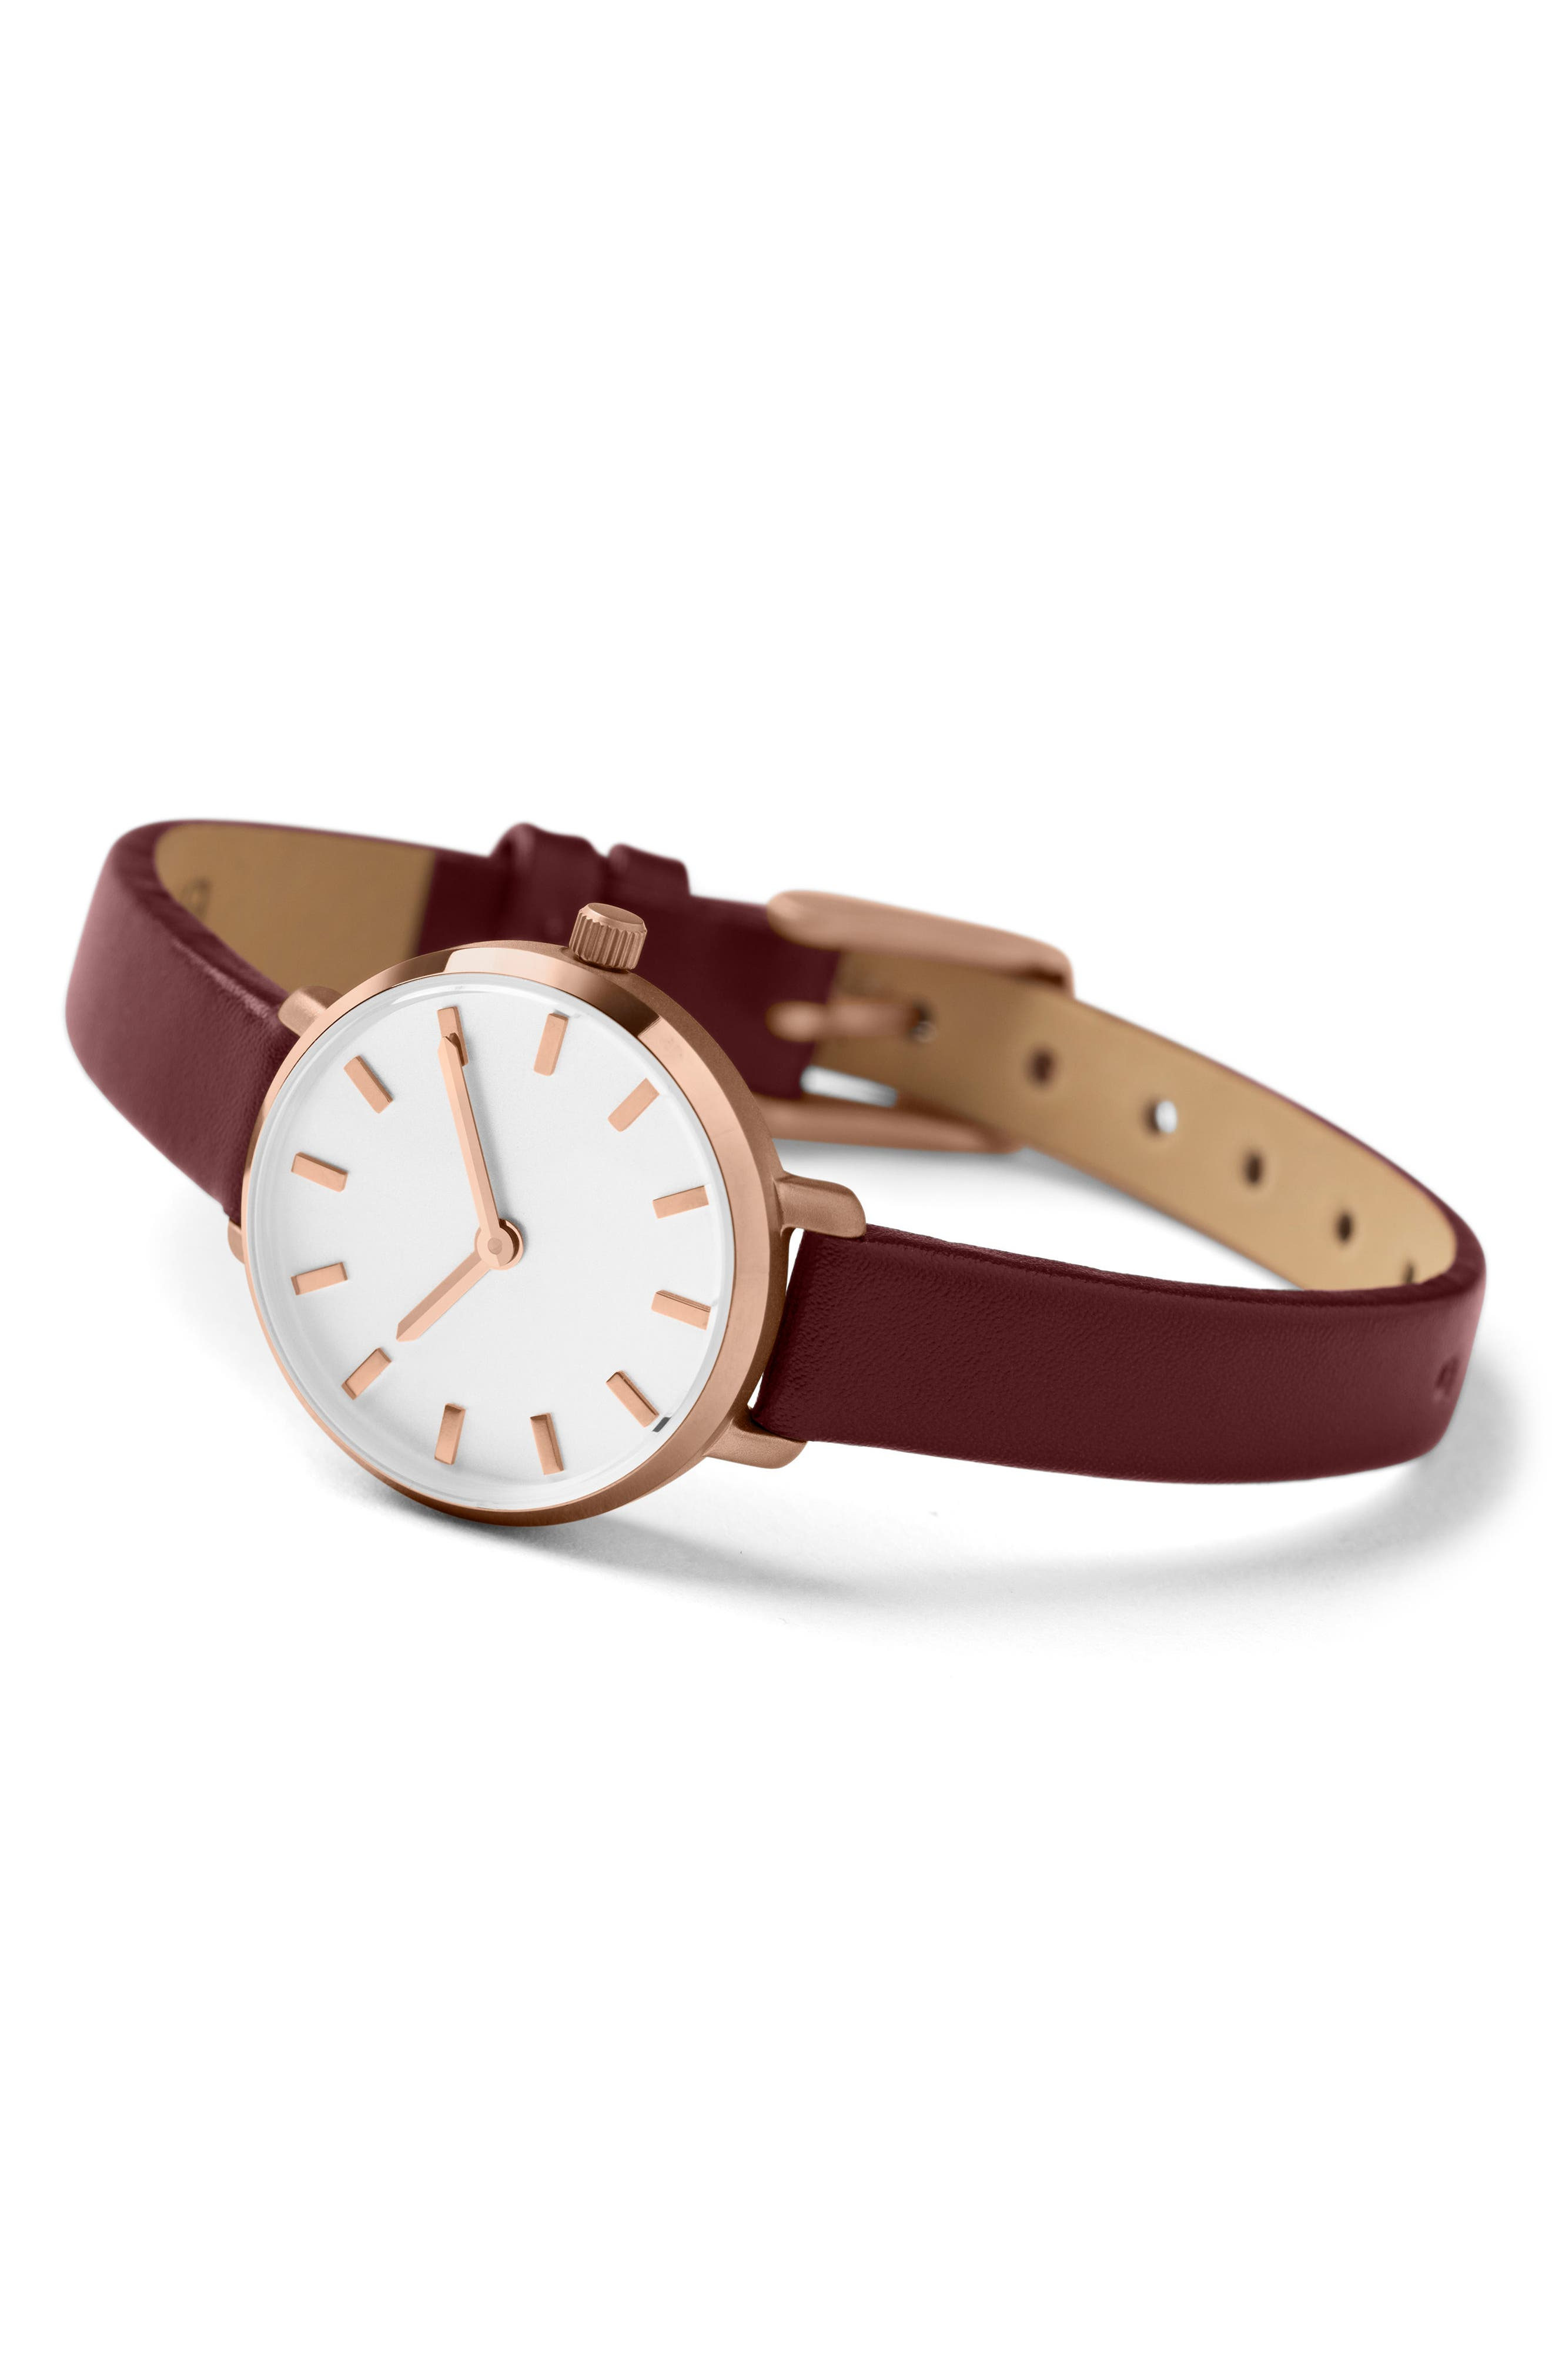 Beverly Round Leather Strap Watch, 26mm,                             Alternate thumbnail 2, color,                             Maroon/ Rose Gold